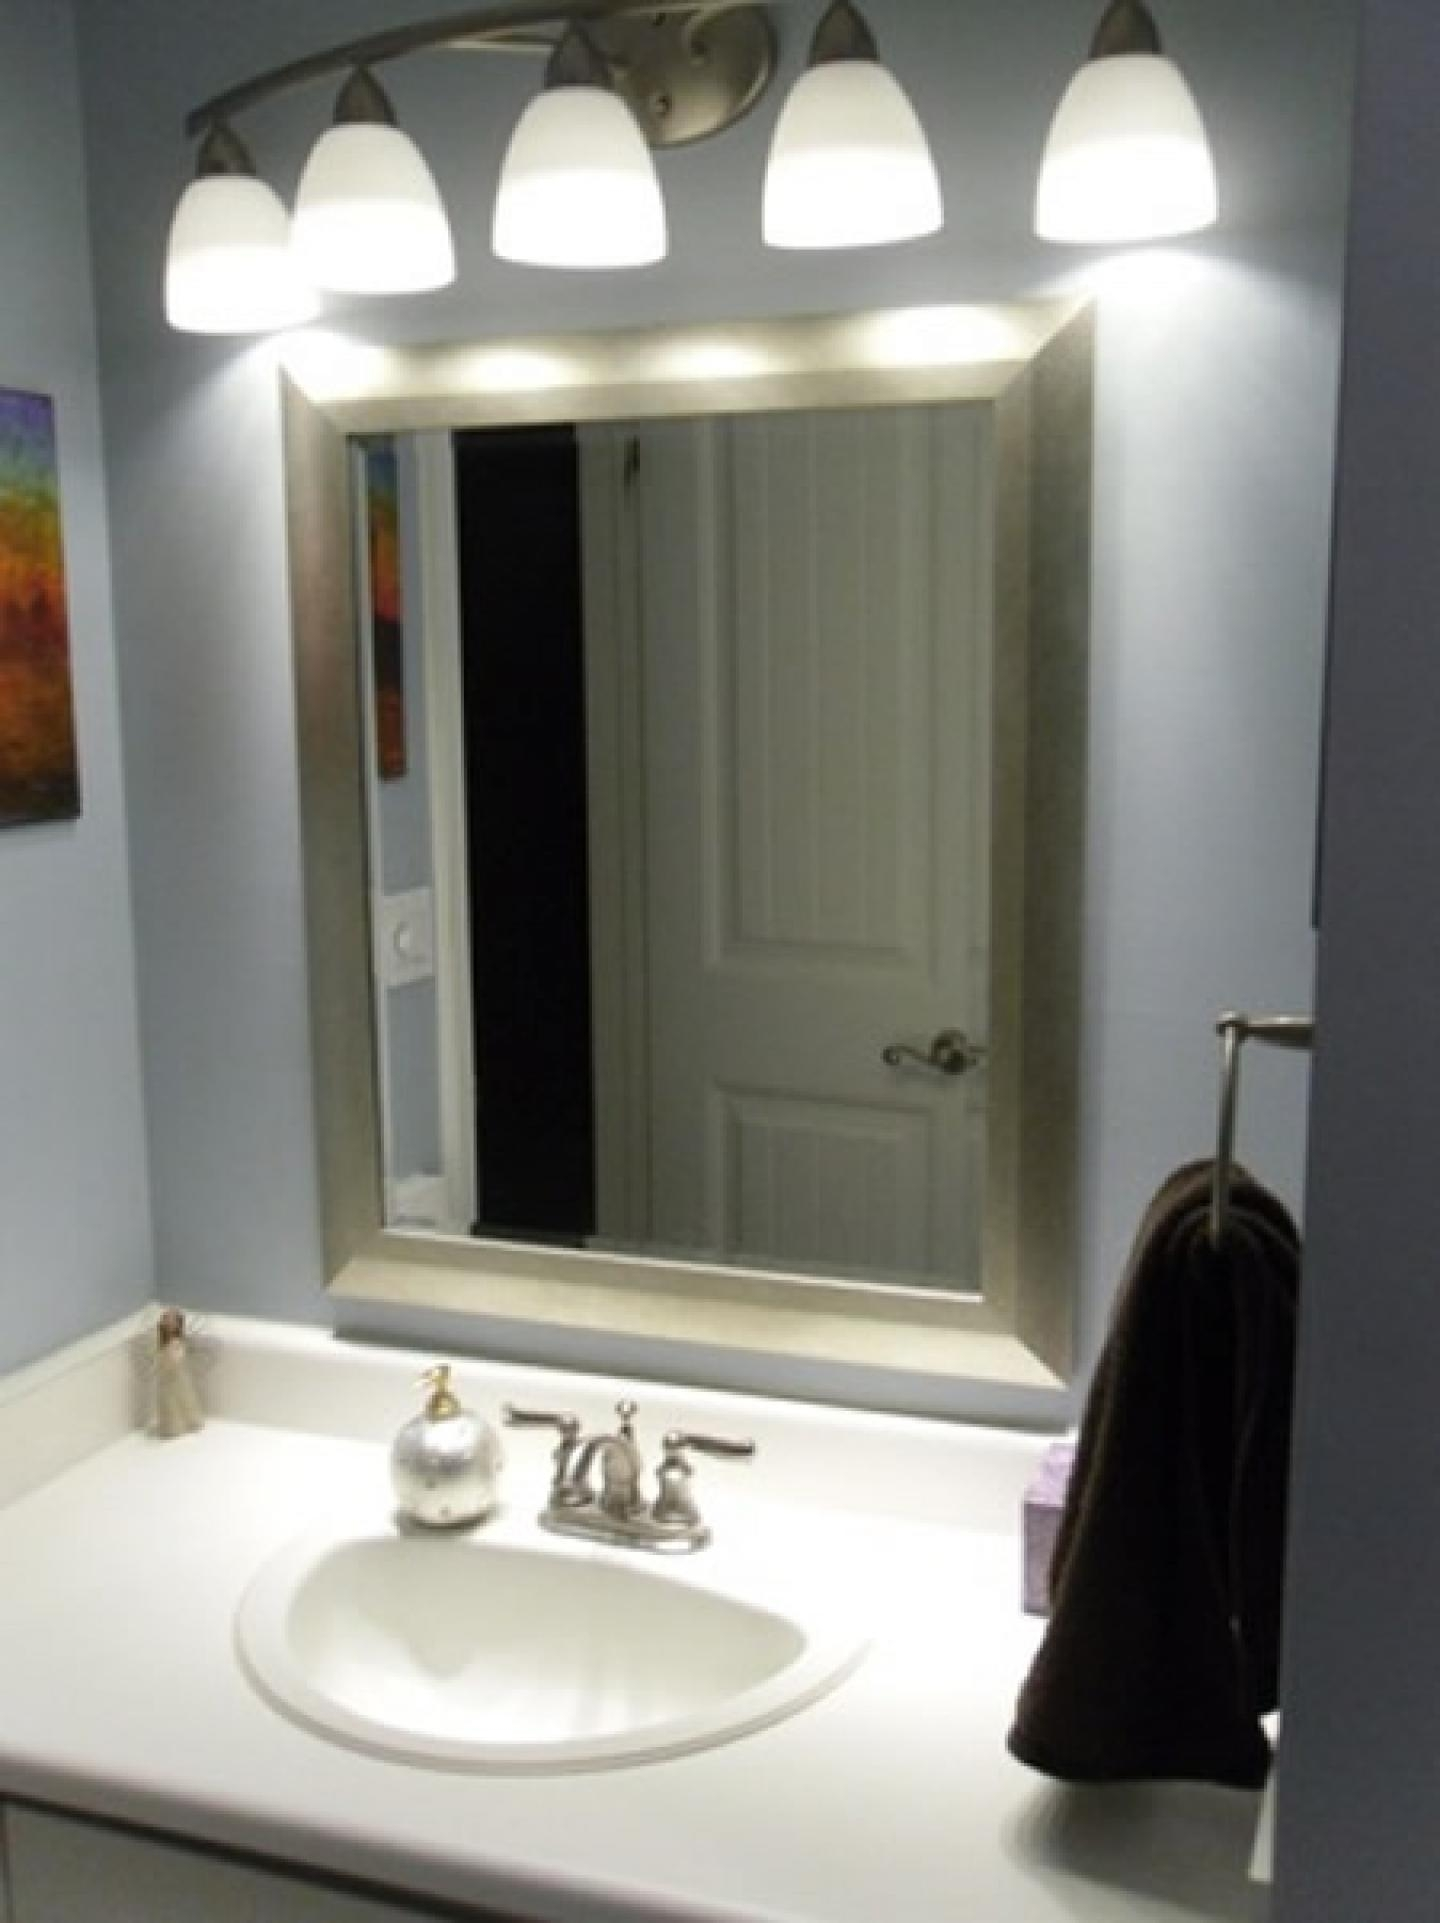 Bathroom Cabinets : Breathtaking Light Fixtures Shades Bathroom Regarding Bathroom Lighting And Mirrors (Image 5 of 20)